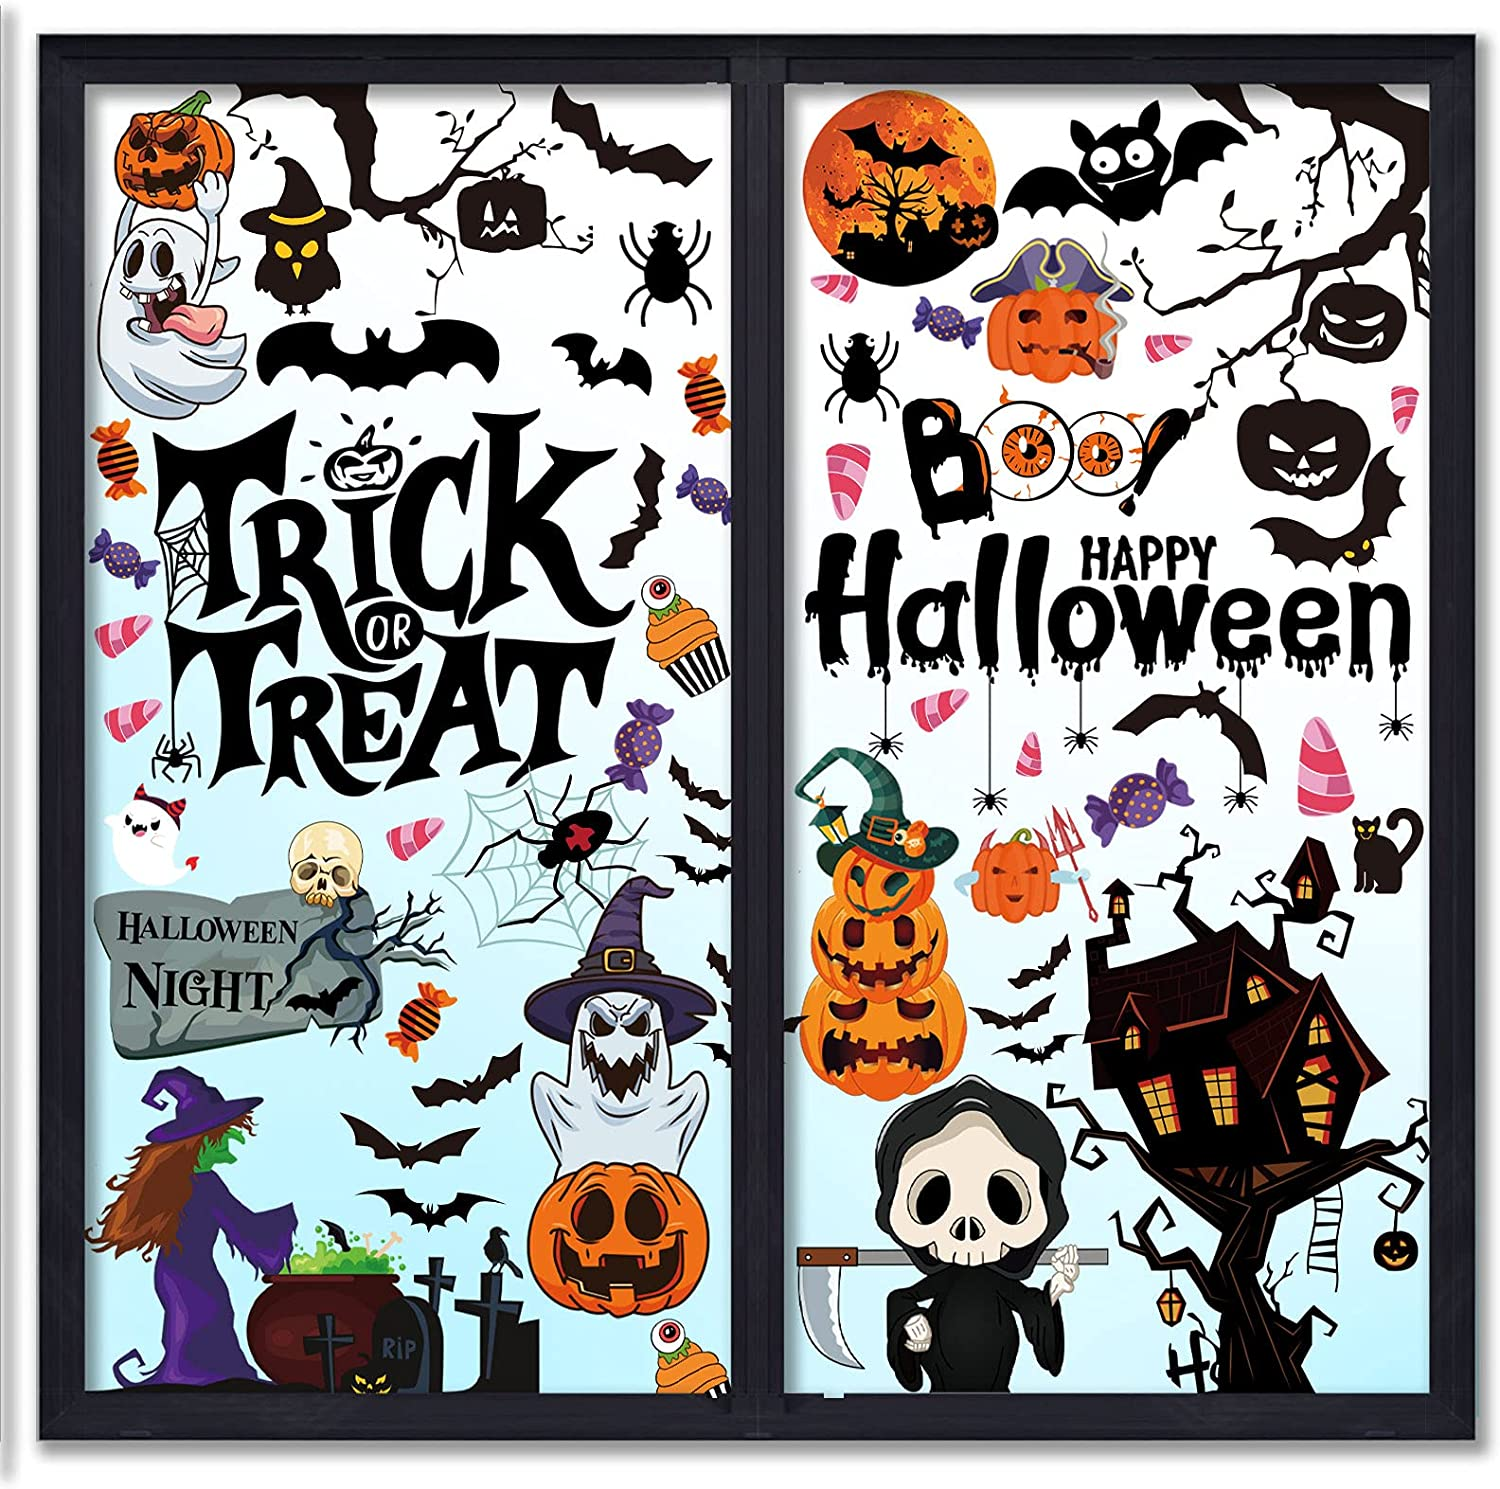 CIIRED 96pcs Halloween Window Omaha Don't miss the campaign Mall Clings Double-Si for Windows Glass